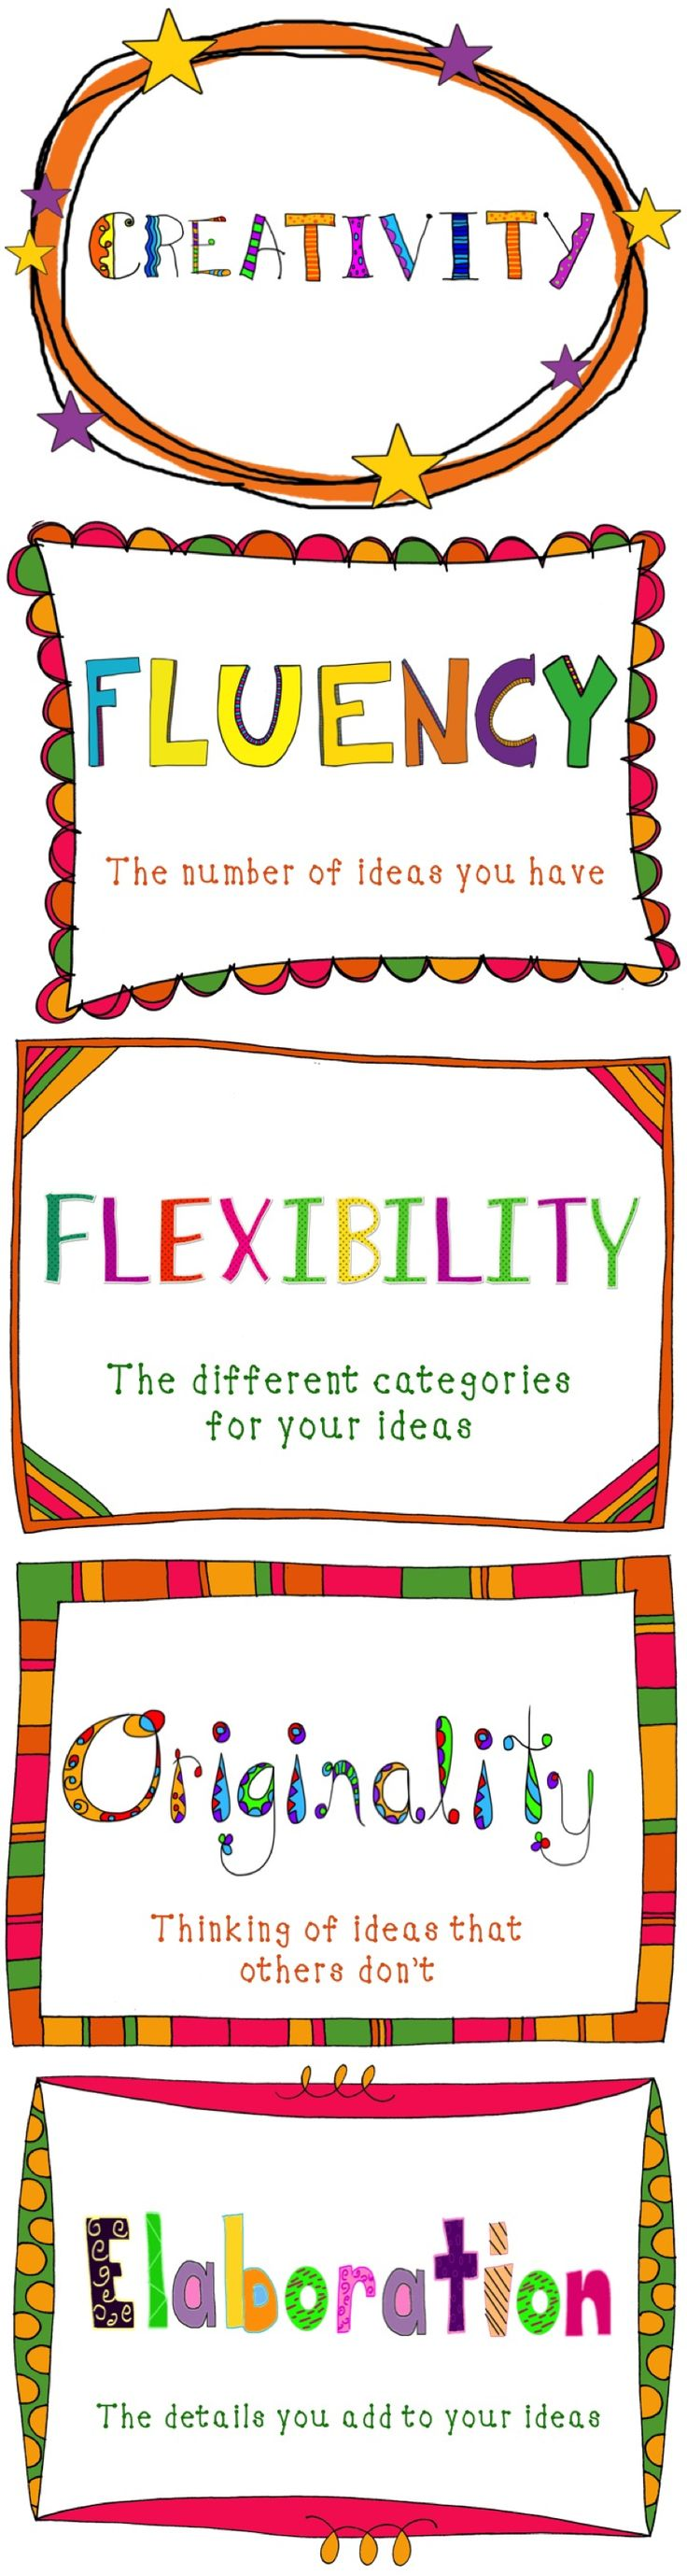 Worksheets Gifted And Talented Worksheets 64 best talented and gifted images on pinterest education creativity posters